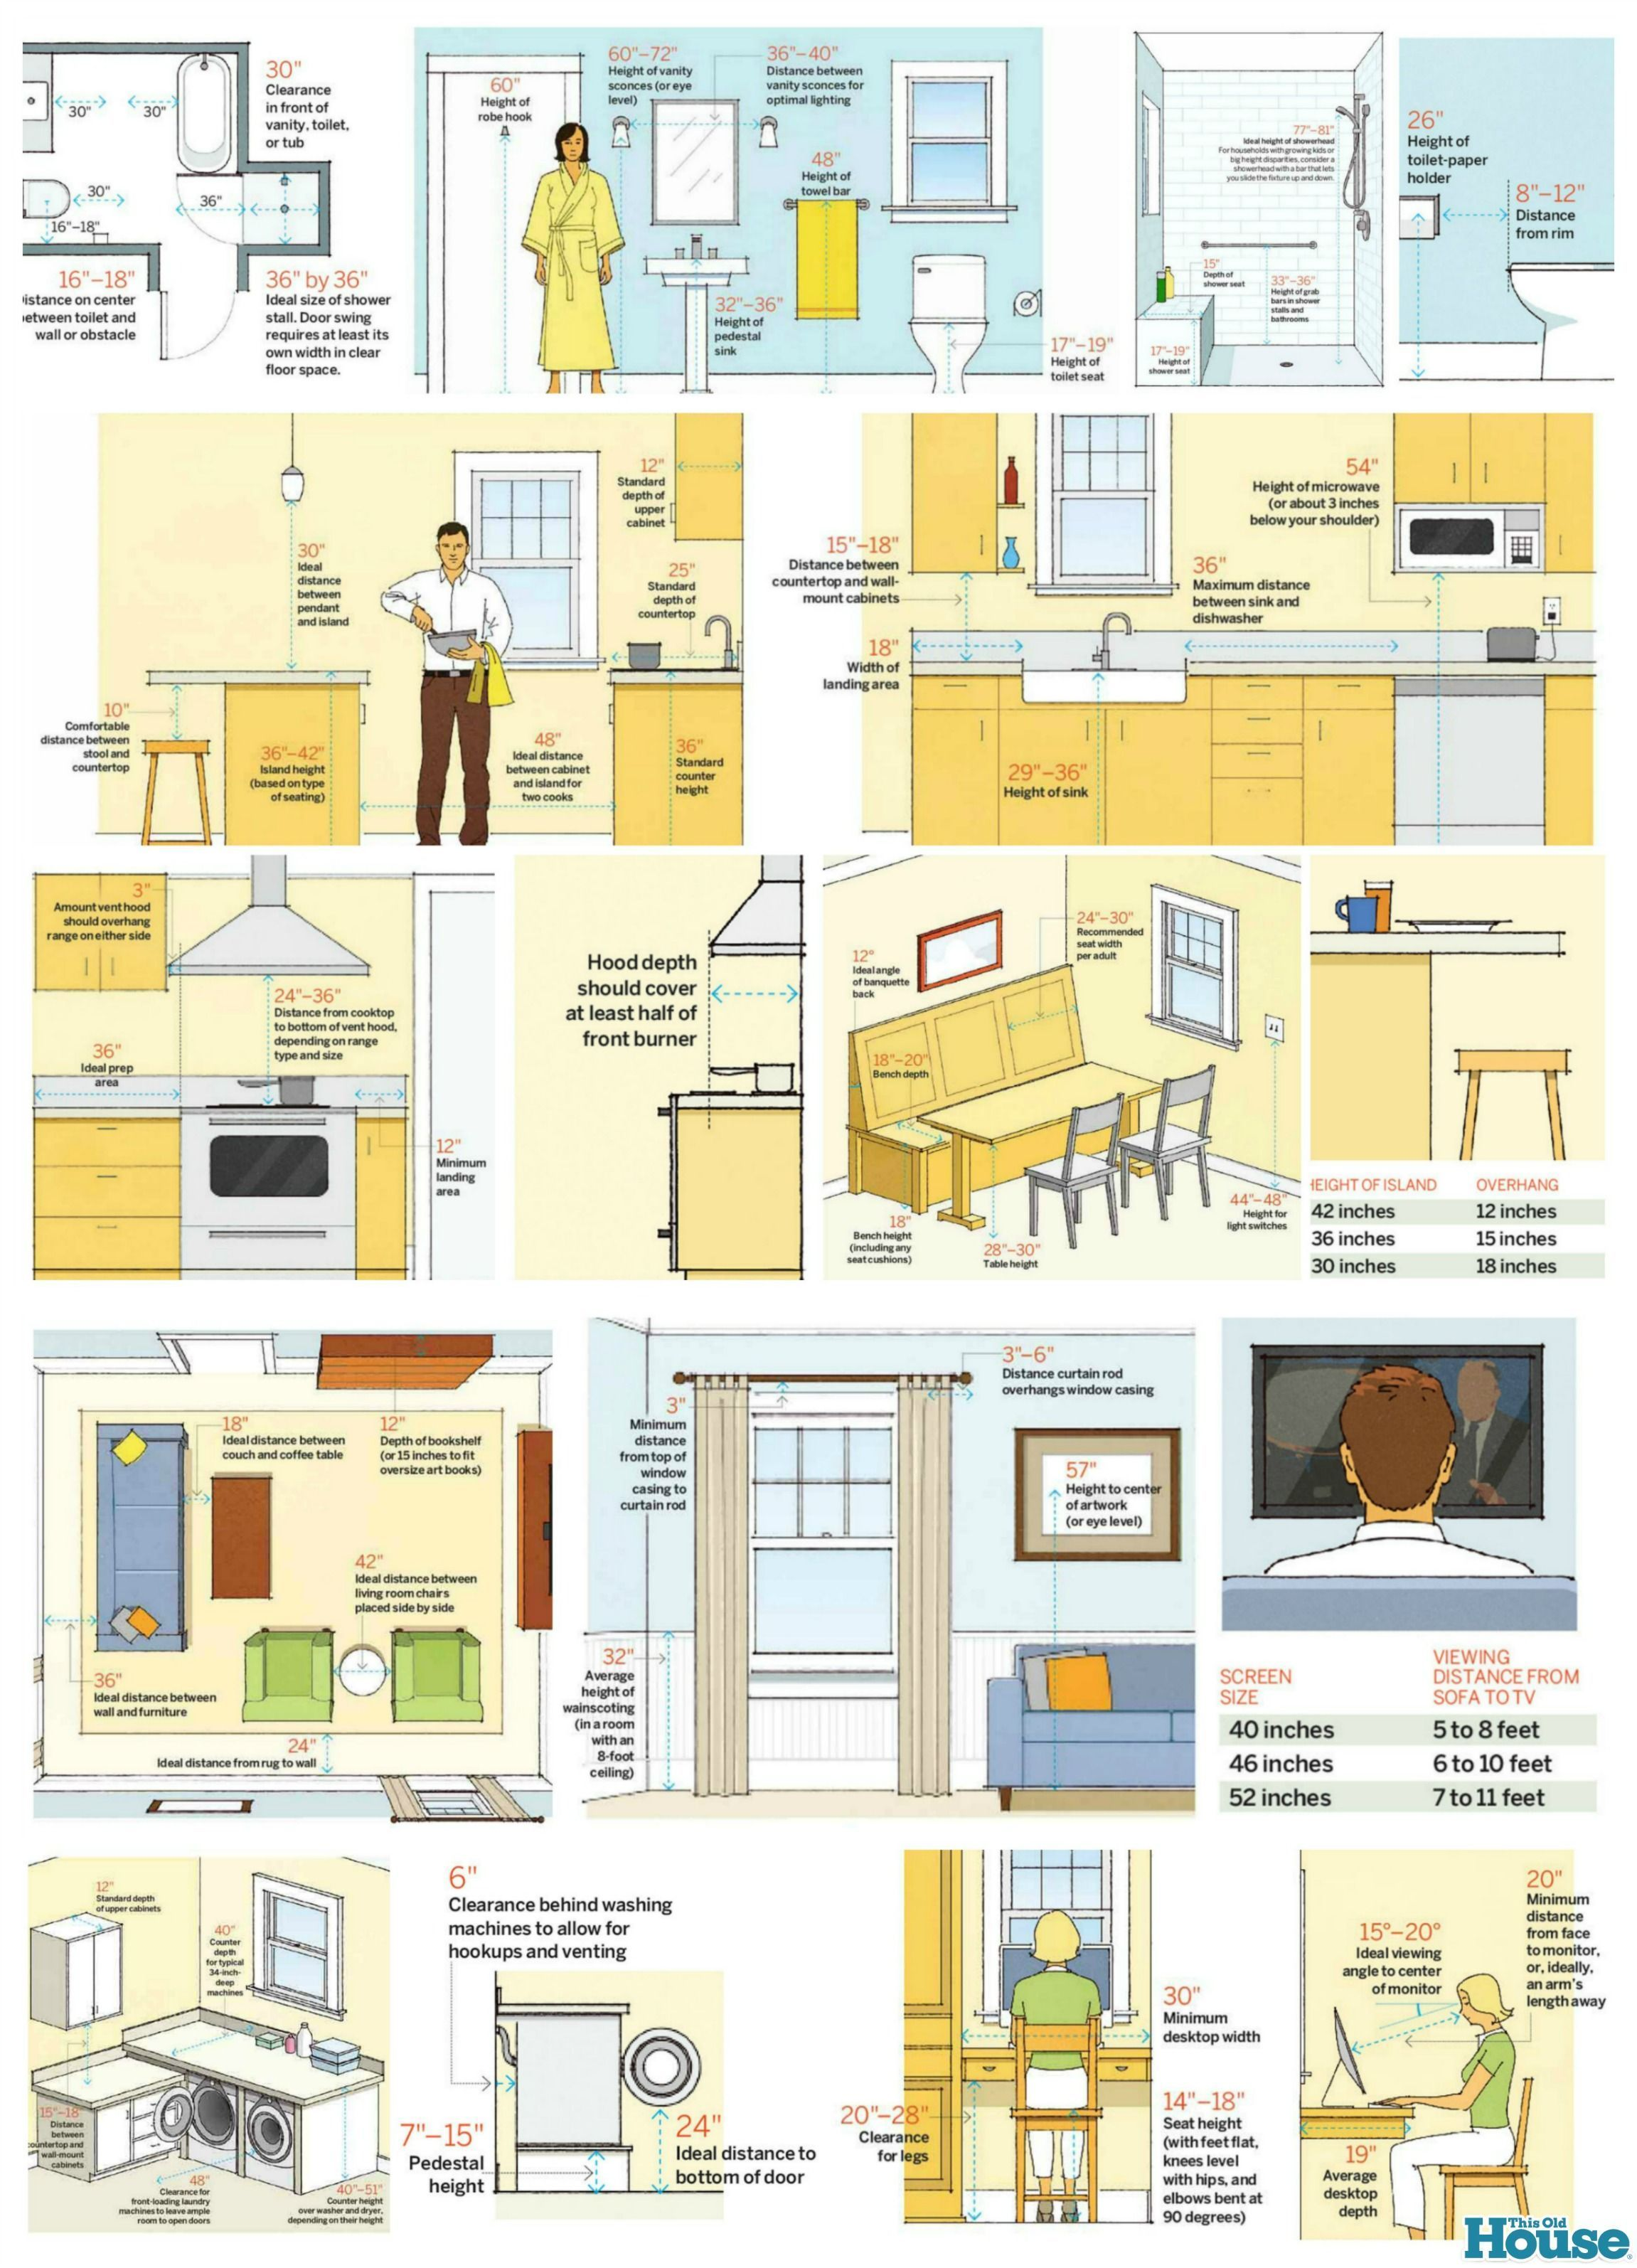 64 Important Numbers Every Homeowner Should Know Home Remodeling Interior Design Resources Home Diy